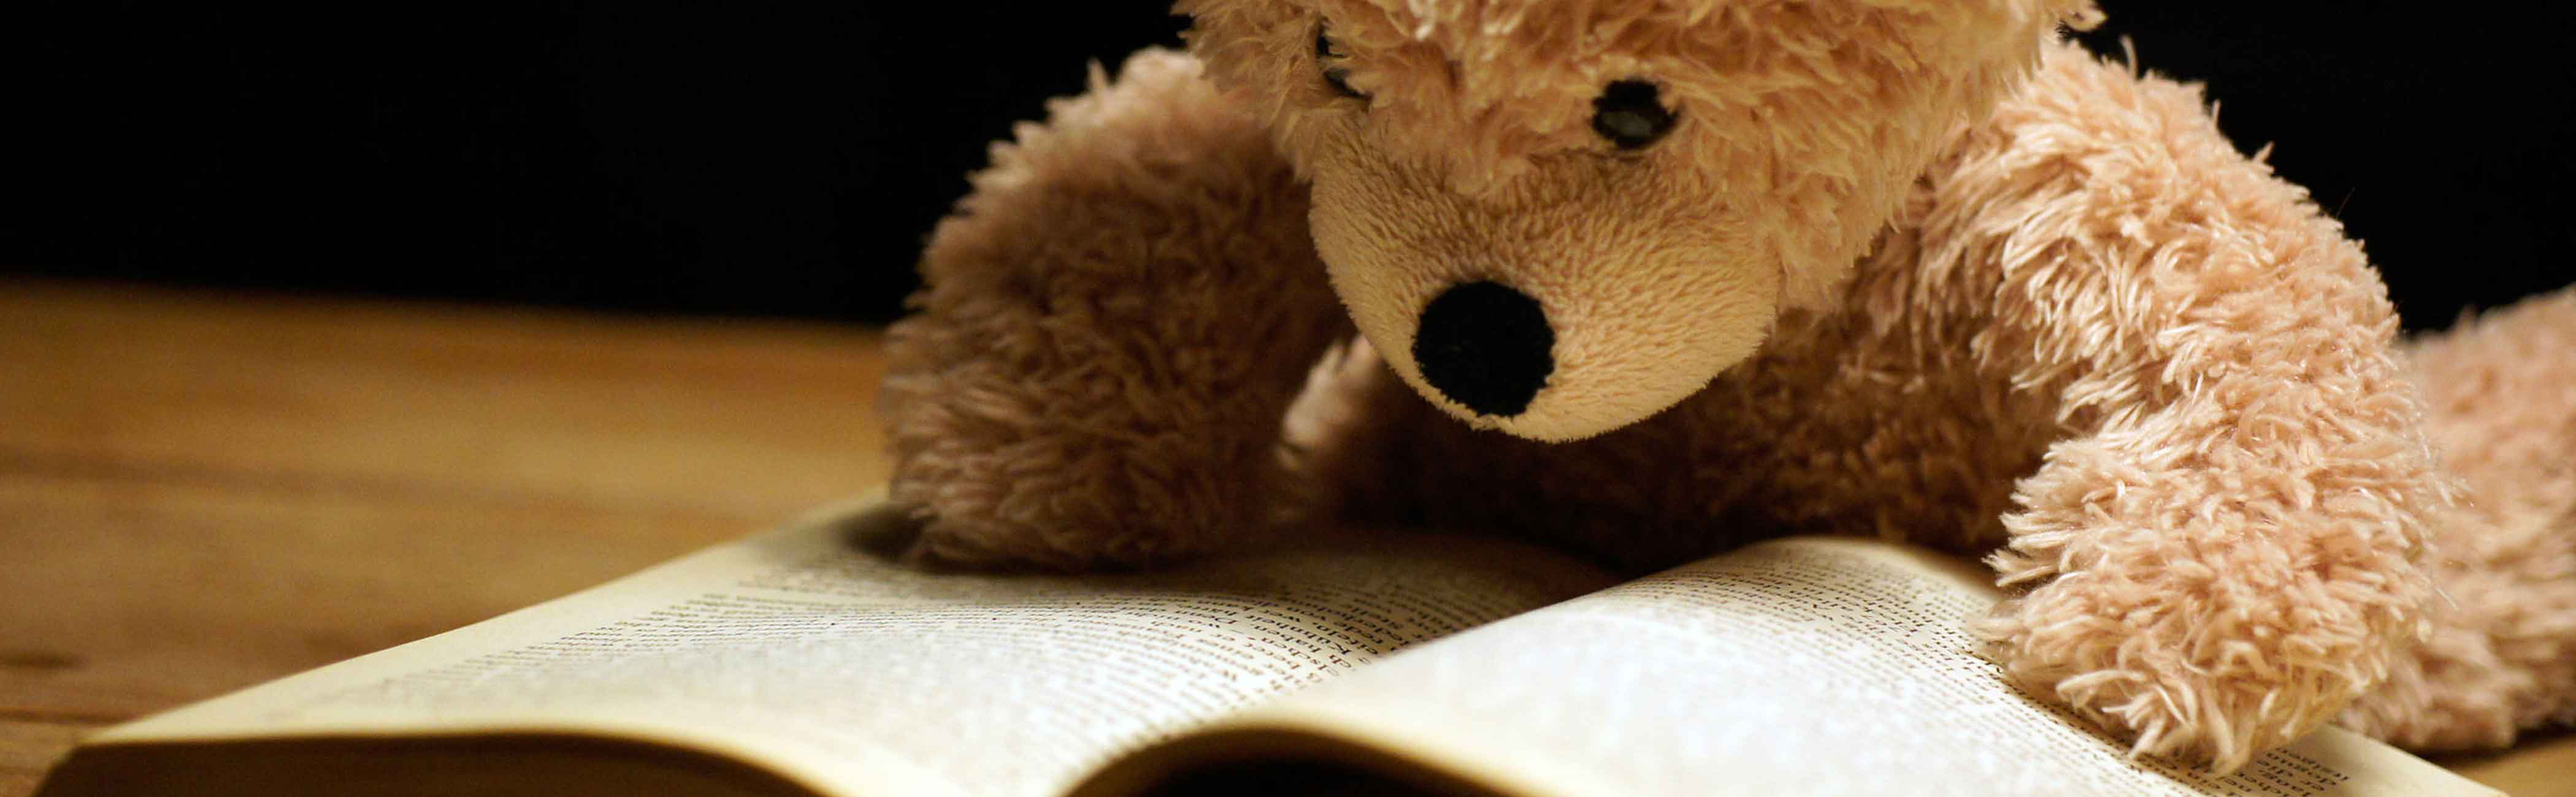 A teddy bear studying a book for networking tips.